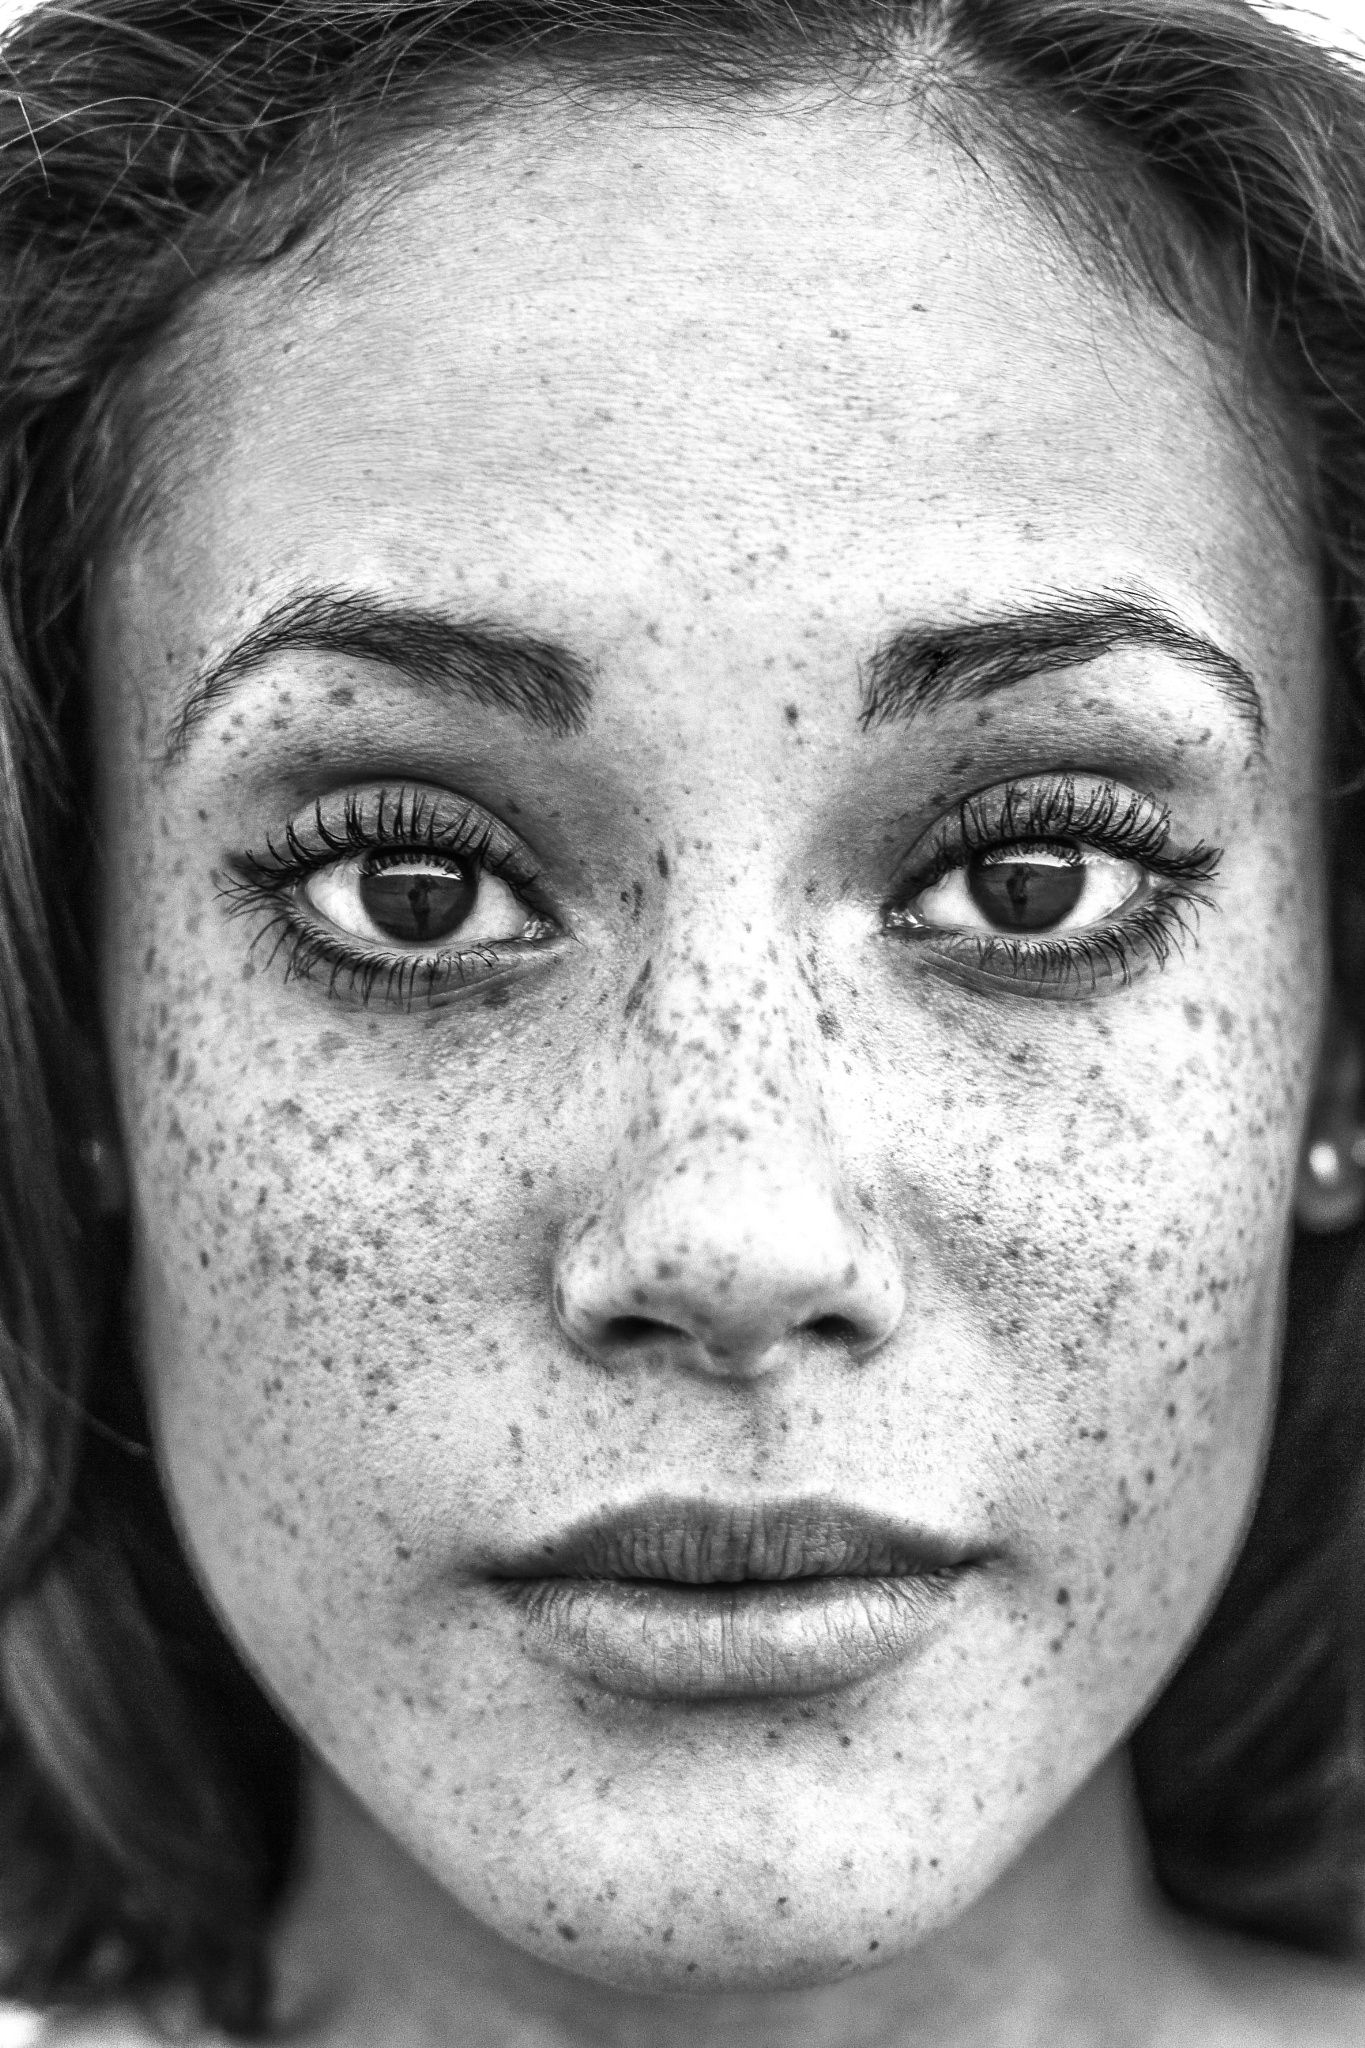 Freckle portrait black and white black and white close up portrait of beautiful female face with freckles gorgeous eyes and lips and a serene look